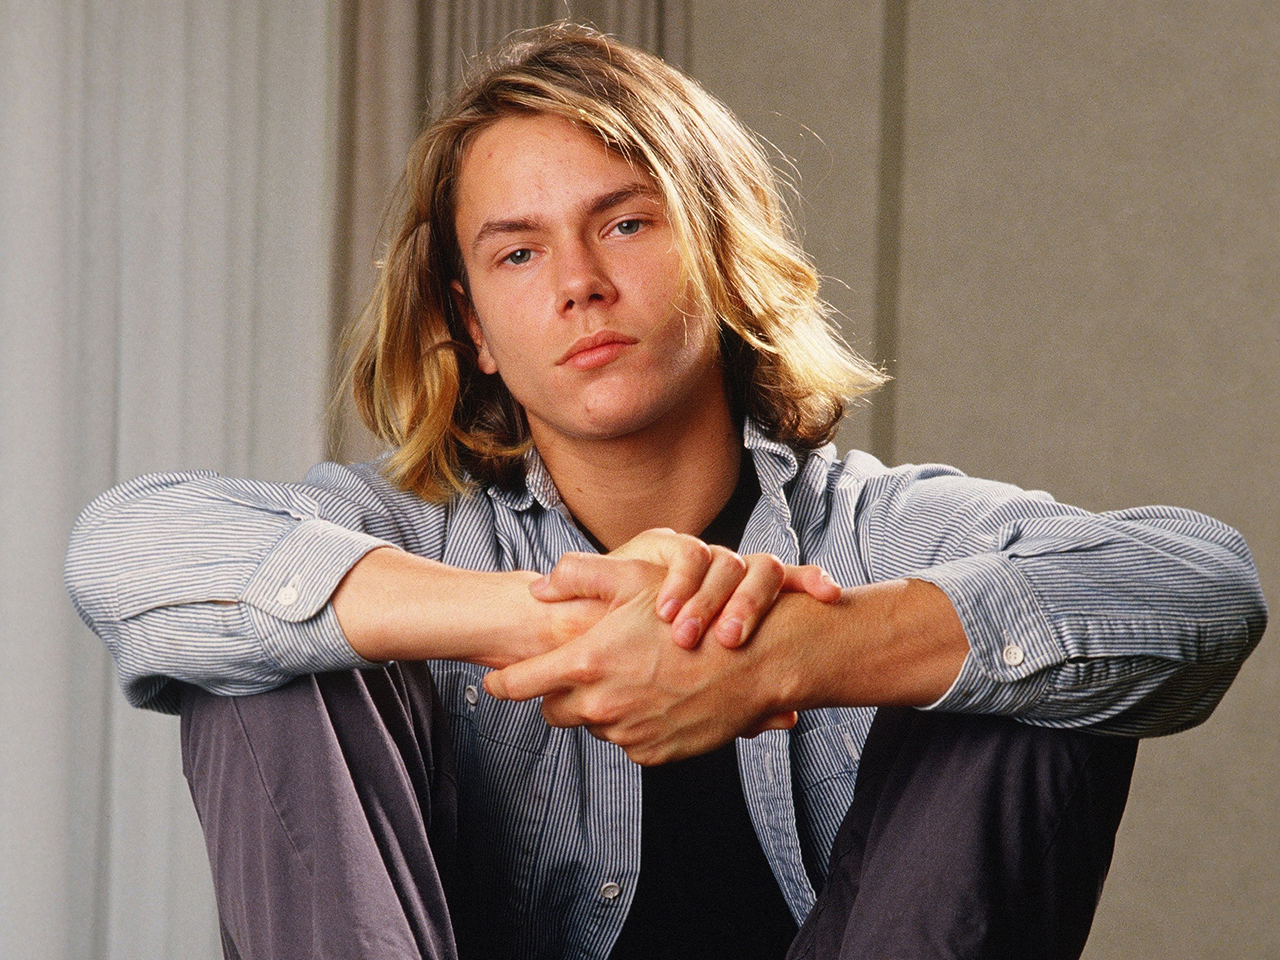 """FILE  October 30: On October 31, 2013 it will be the 20th anniversary of the death of actor River Phoenix. Known for his roles in 'Stand By Me', 'My Own Private Idaho' and 'Indiana Jones and the Last Crusade', Phoenix quickly became a teen sensation. He died at the age of 23 after suffering drug-induced heart failure caused by heroin and cocaine at the Viper Room, in West Hollywood, California.   Please refer to the following profile on Getty Images Archival for further imagery: http://www.gettyimages.co.uk/Search/Search.aspx?EventId=129902435&EditorialProduct=Entertainment&esource=maplinARC_uki_13oct LOS ANGELES, CA - 1988:  Actor River Phoenix, star of """"Stand By Me,"""" poses during a 1988 Los Angeles, California, photo portrait session. Phoenix, a rising young film star, tragically died in 1993 outside a Sunset Strip nightclub of a drug overdose. (Photo by George Rose/Getty Images)"""